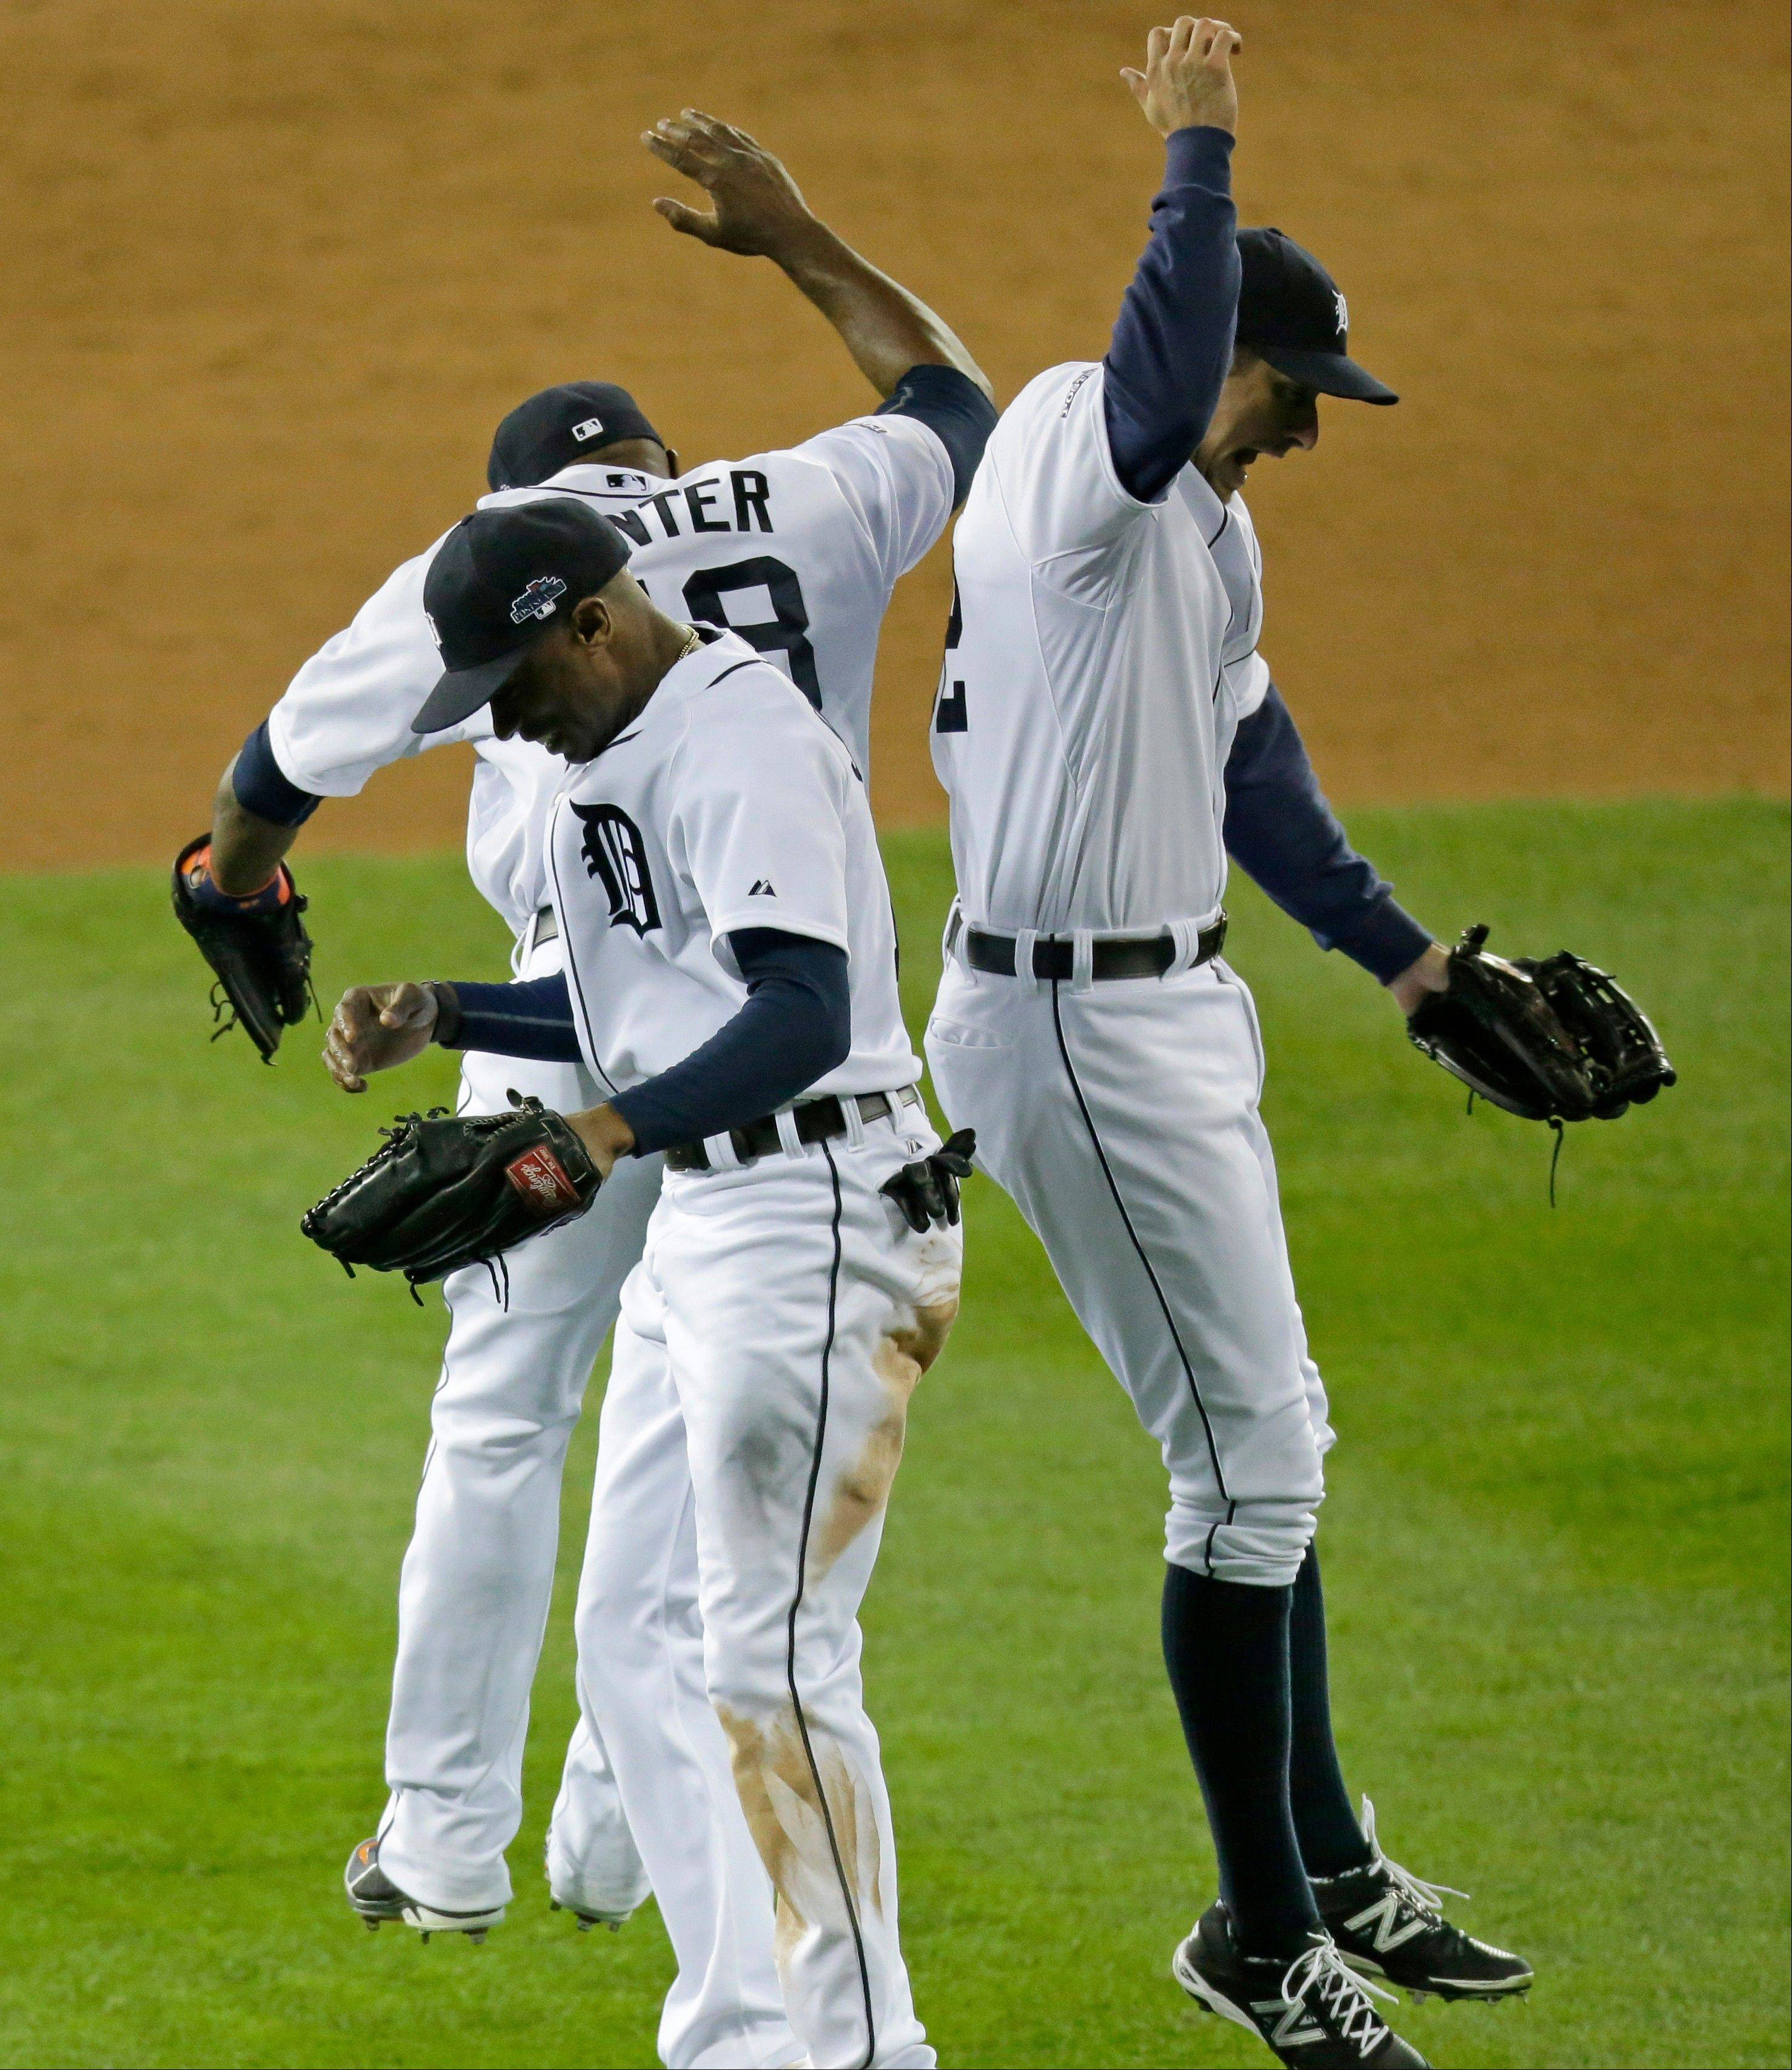 Detroit�s Austin Jackson, Torii Hunter, and Don Kelly celebrate Wednesday night after Game 4 of the American League Championship Series against Boston. The Tigers won 7-3 at home.